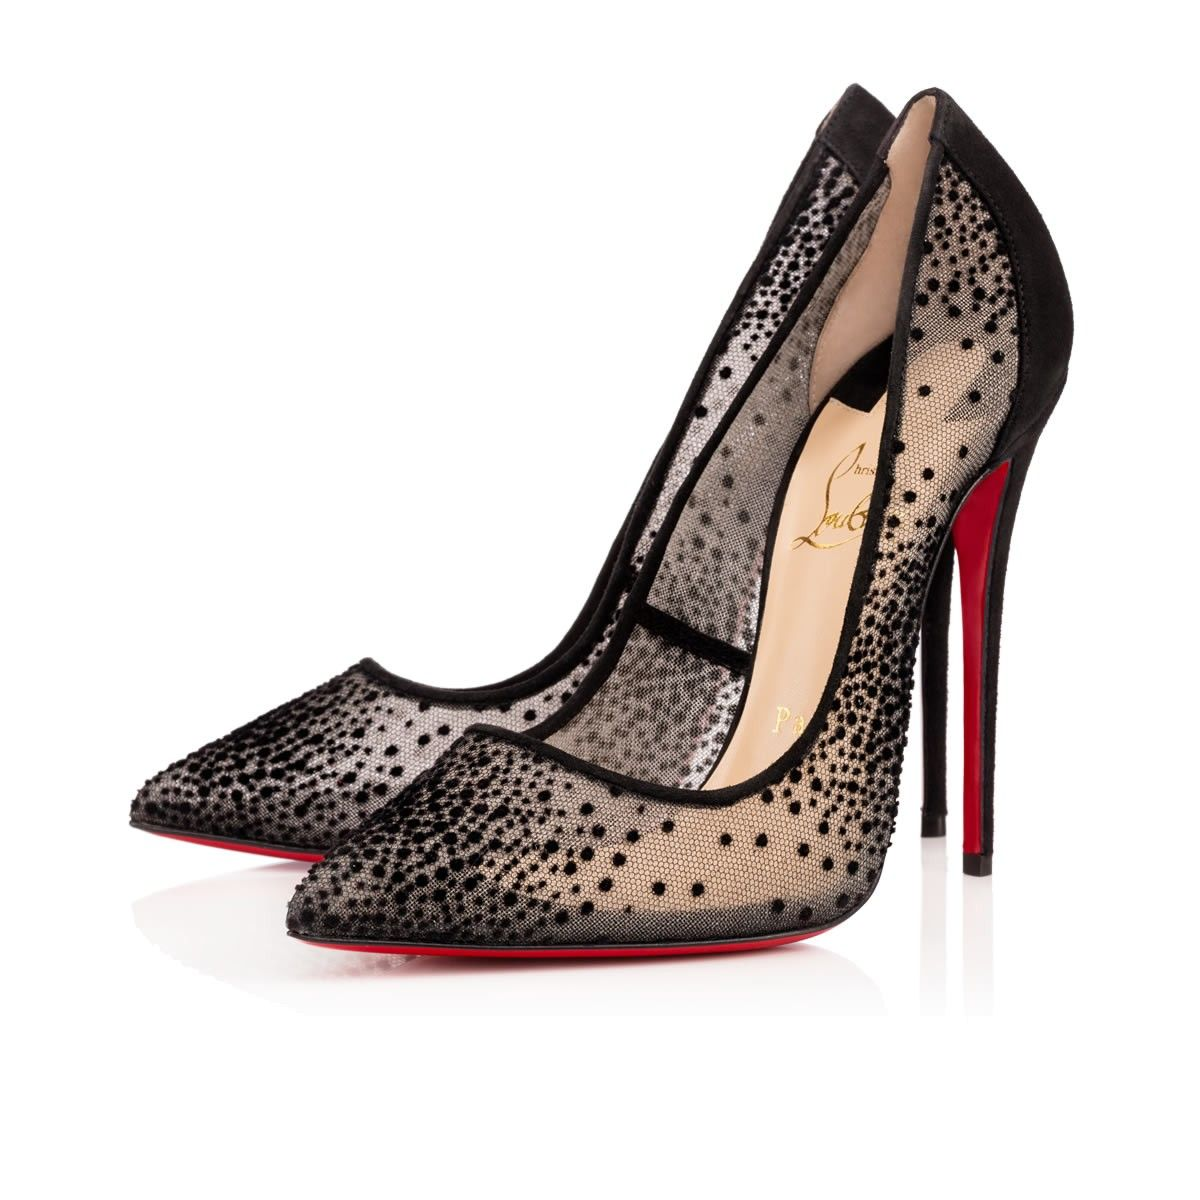 81f9451fc688 Follies Strass 120mm Black Chiffon What could I do in these   footfetish   CBT  crushing